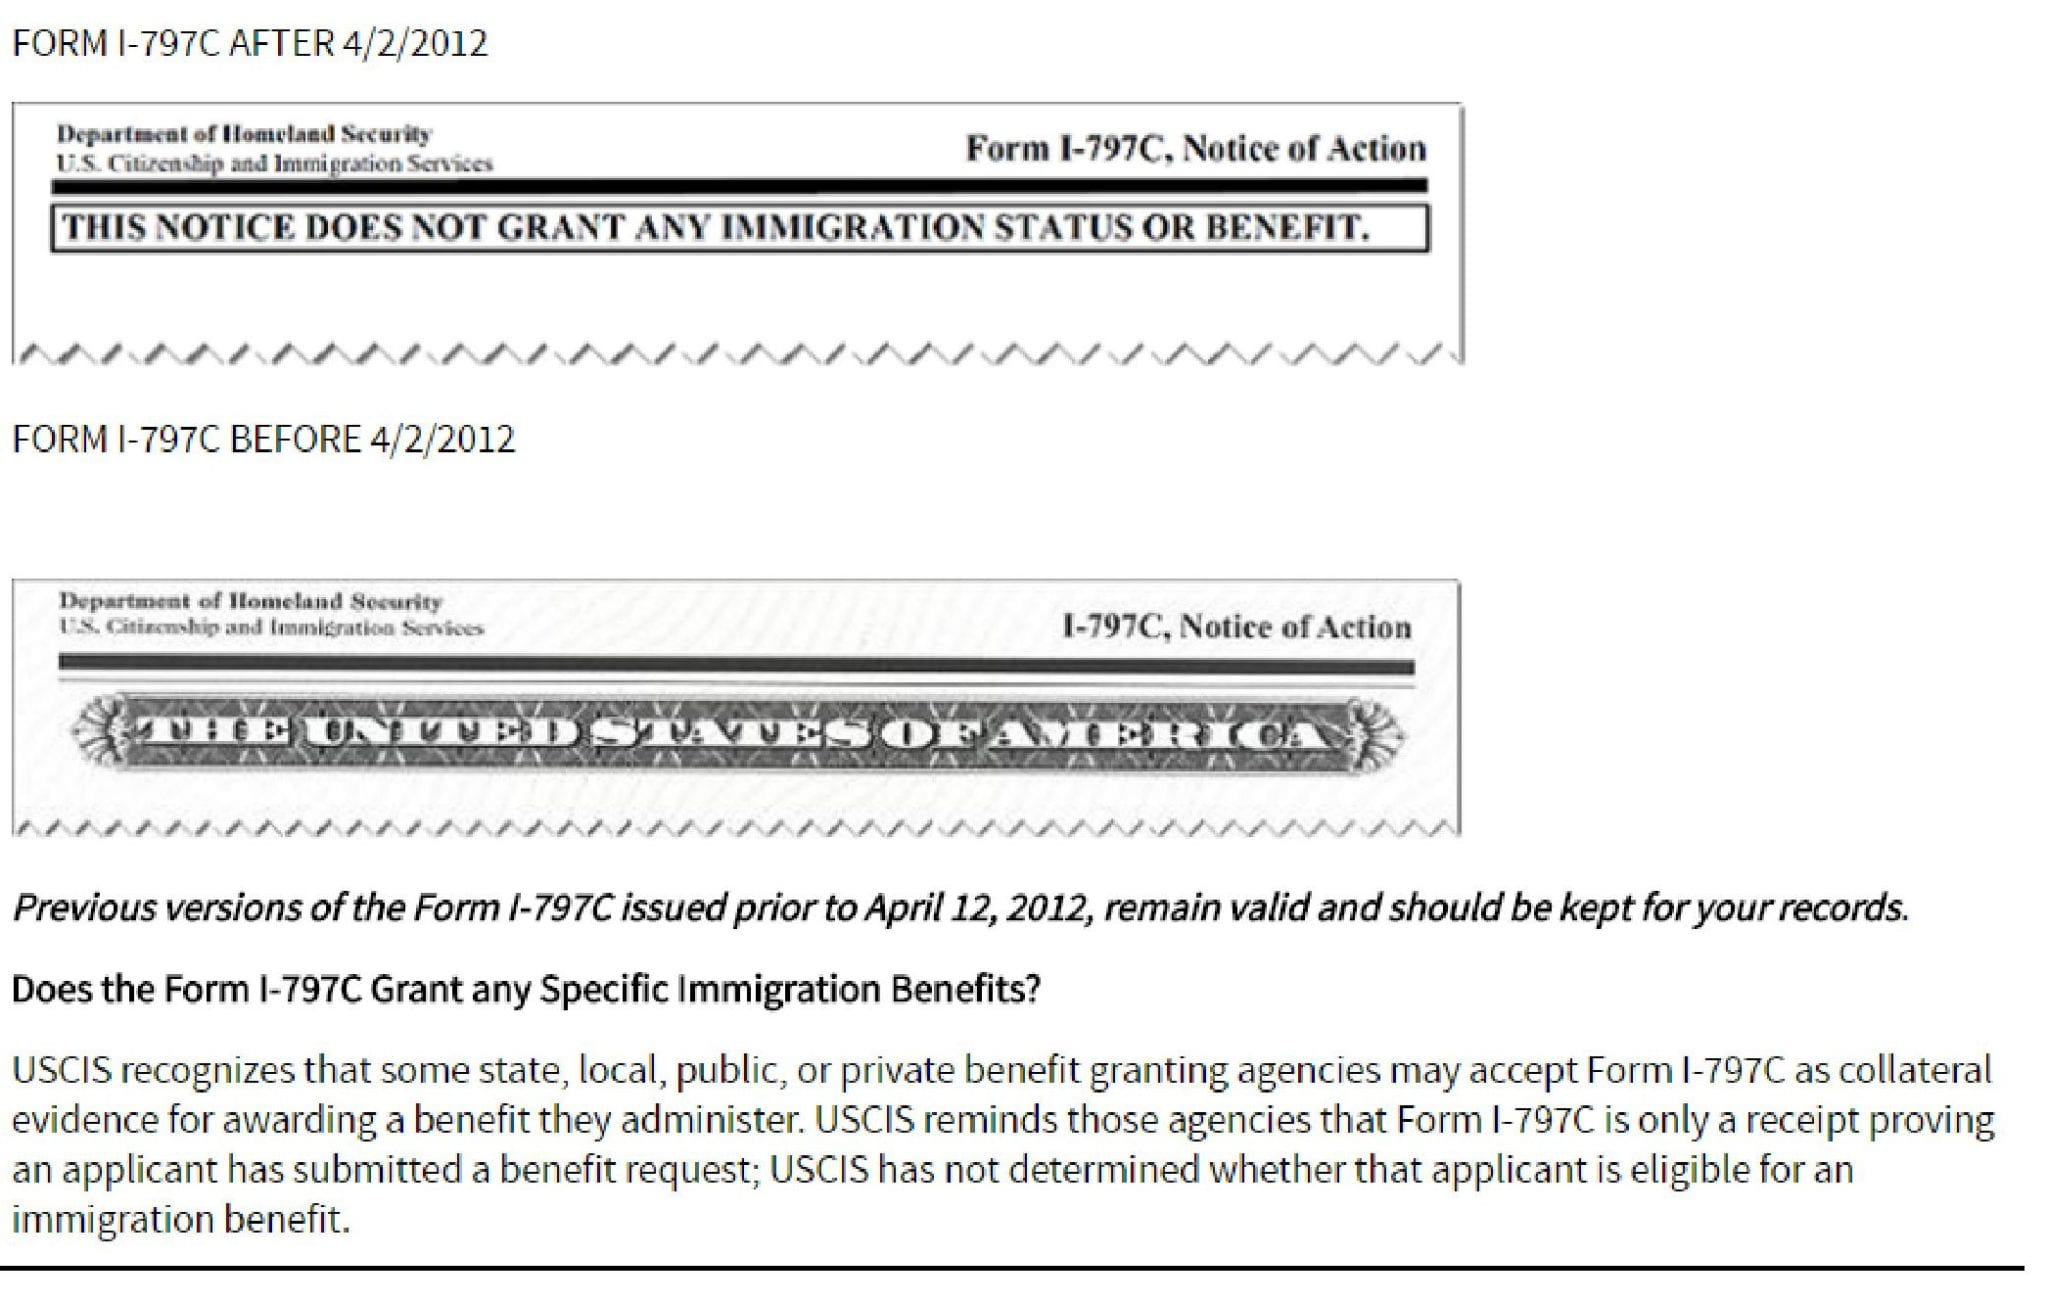 In April Of 2012 USCIS Changed The Format Form I 797 It Is Now Printed On Plain Bond Paper And Includes A Header Stating THIS NOTICE DOES NOT GRANT